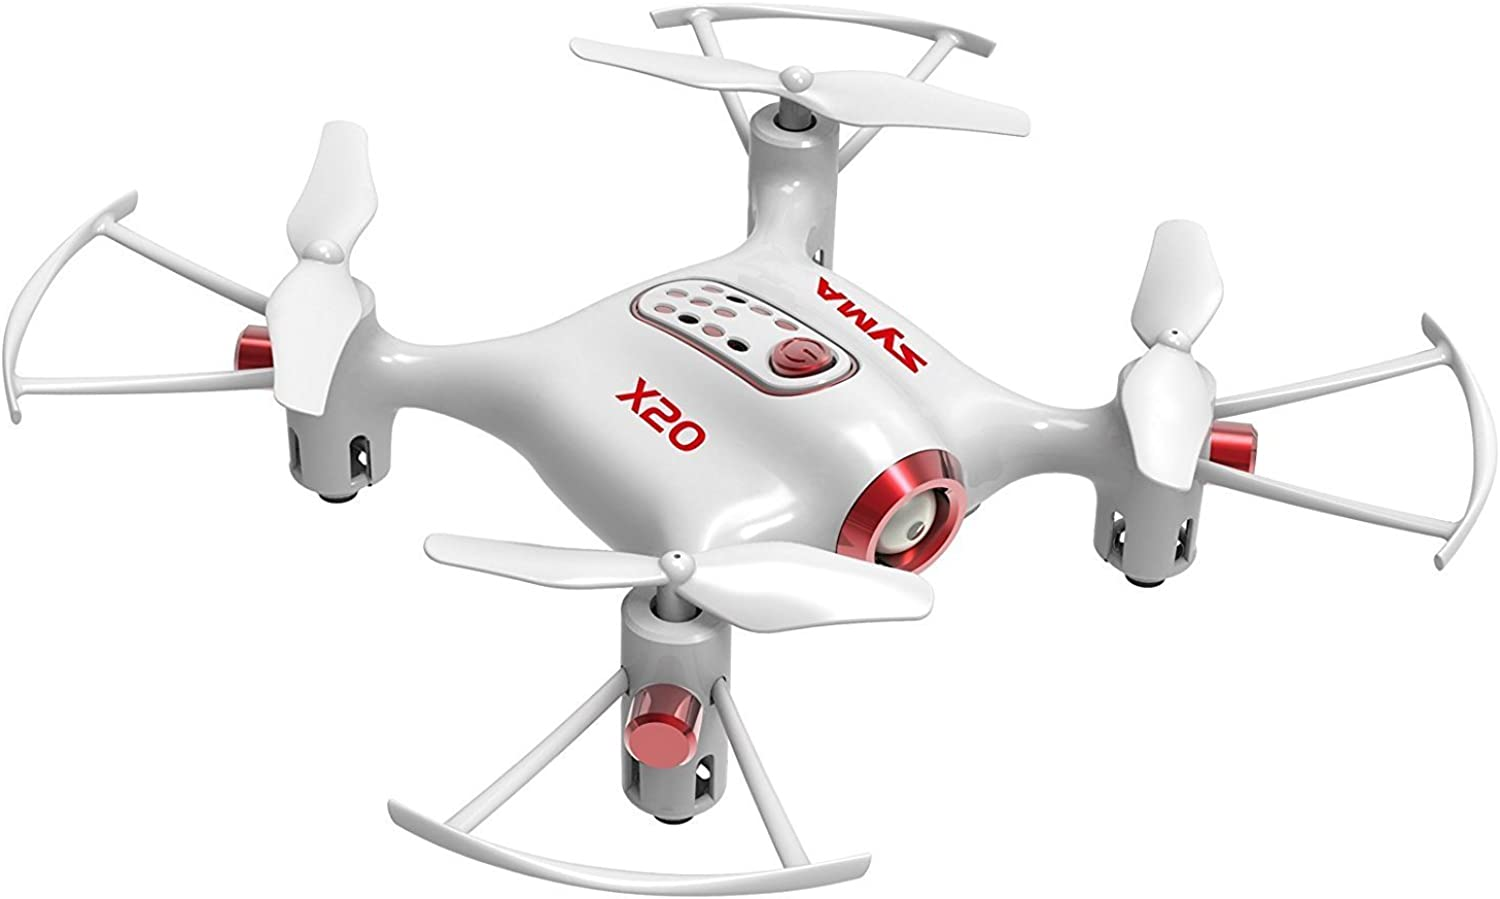 Cheerwing Syma X20 Pocket Drone 2.4Ghz Remote Control Mini RC Quadcopter with Altitude Hold and One Key TakeOff   Landing White